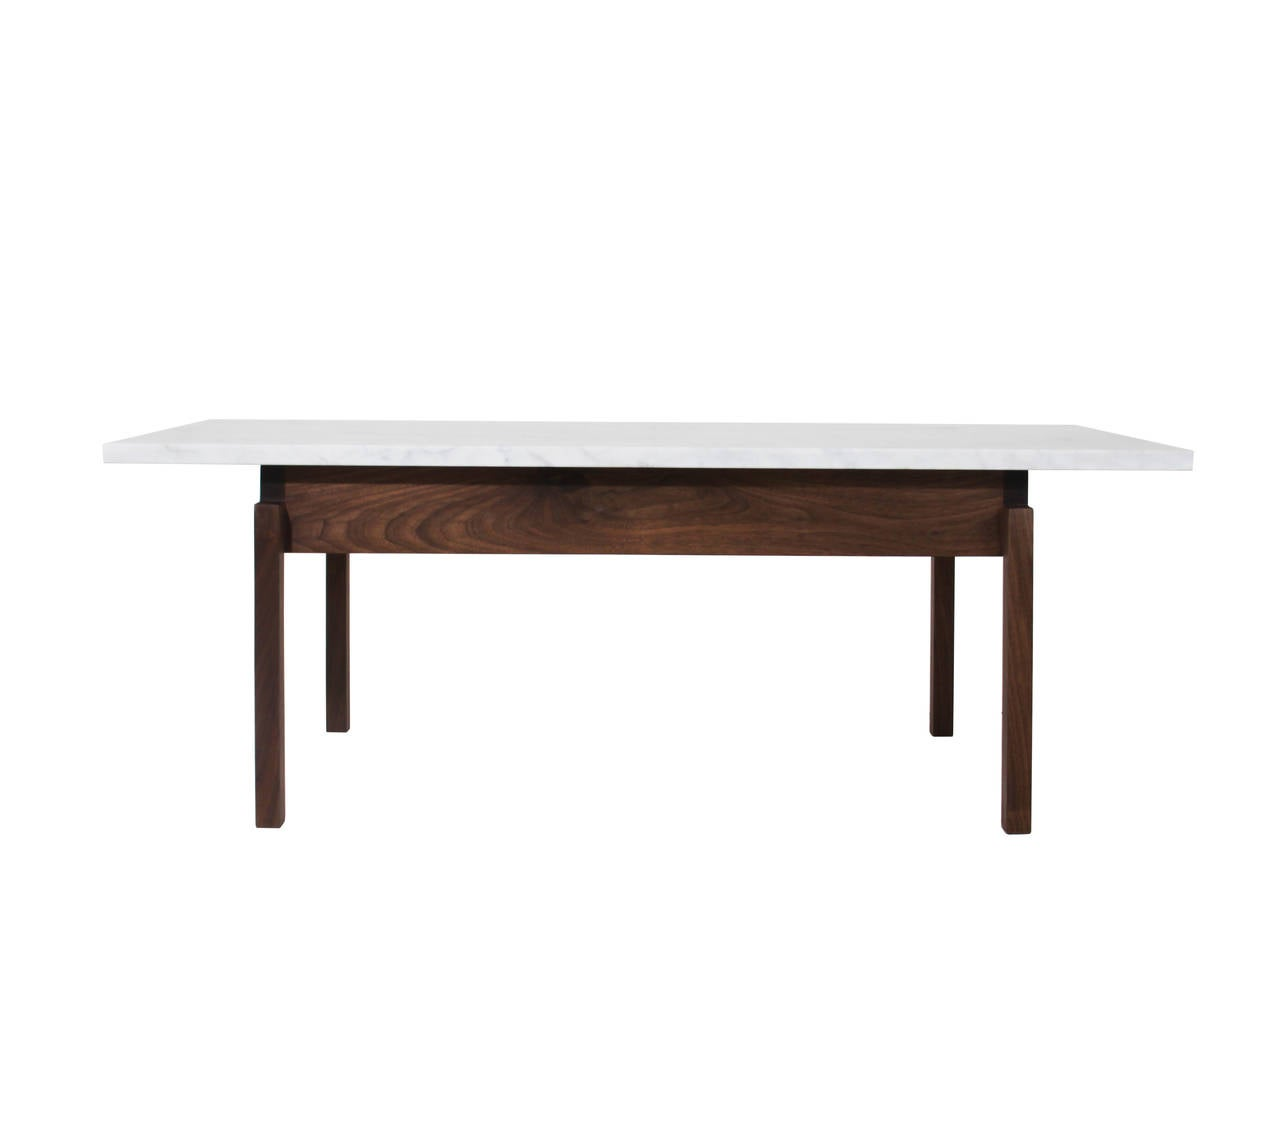 Walnut Coffee Table With Carrara Marble Top By Thomas Hayes Studio At 1stdibs